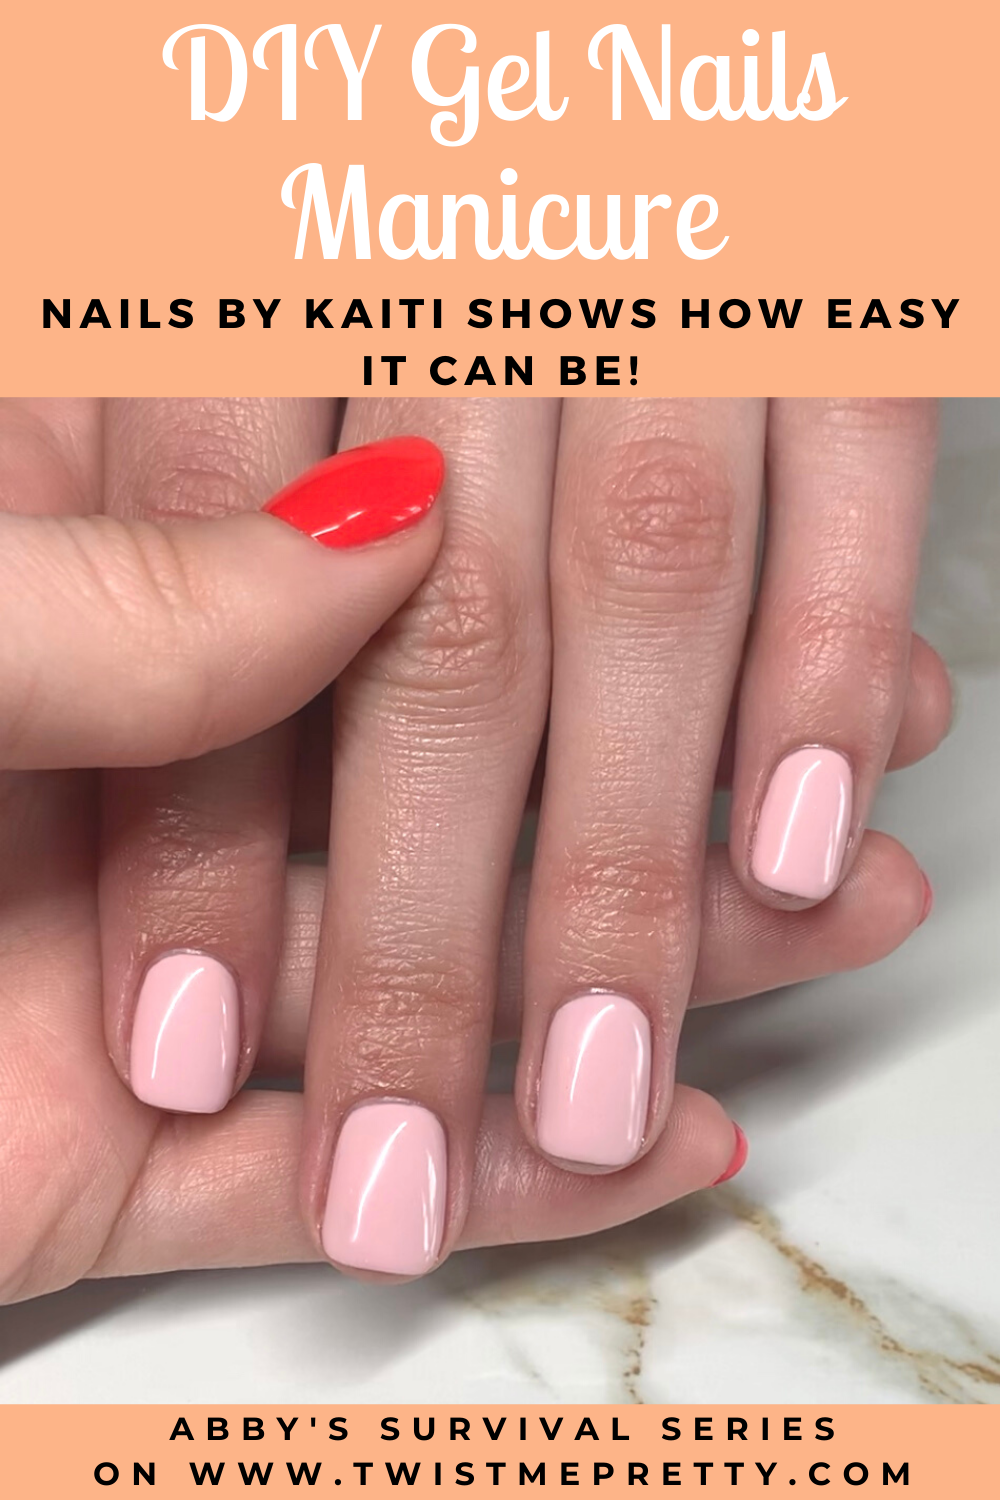 DIY Gel Nails Manicure- Nails By Kaiti shows how easy it can be! www.TwistMePretty.com